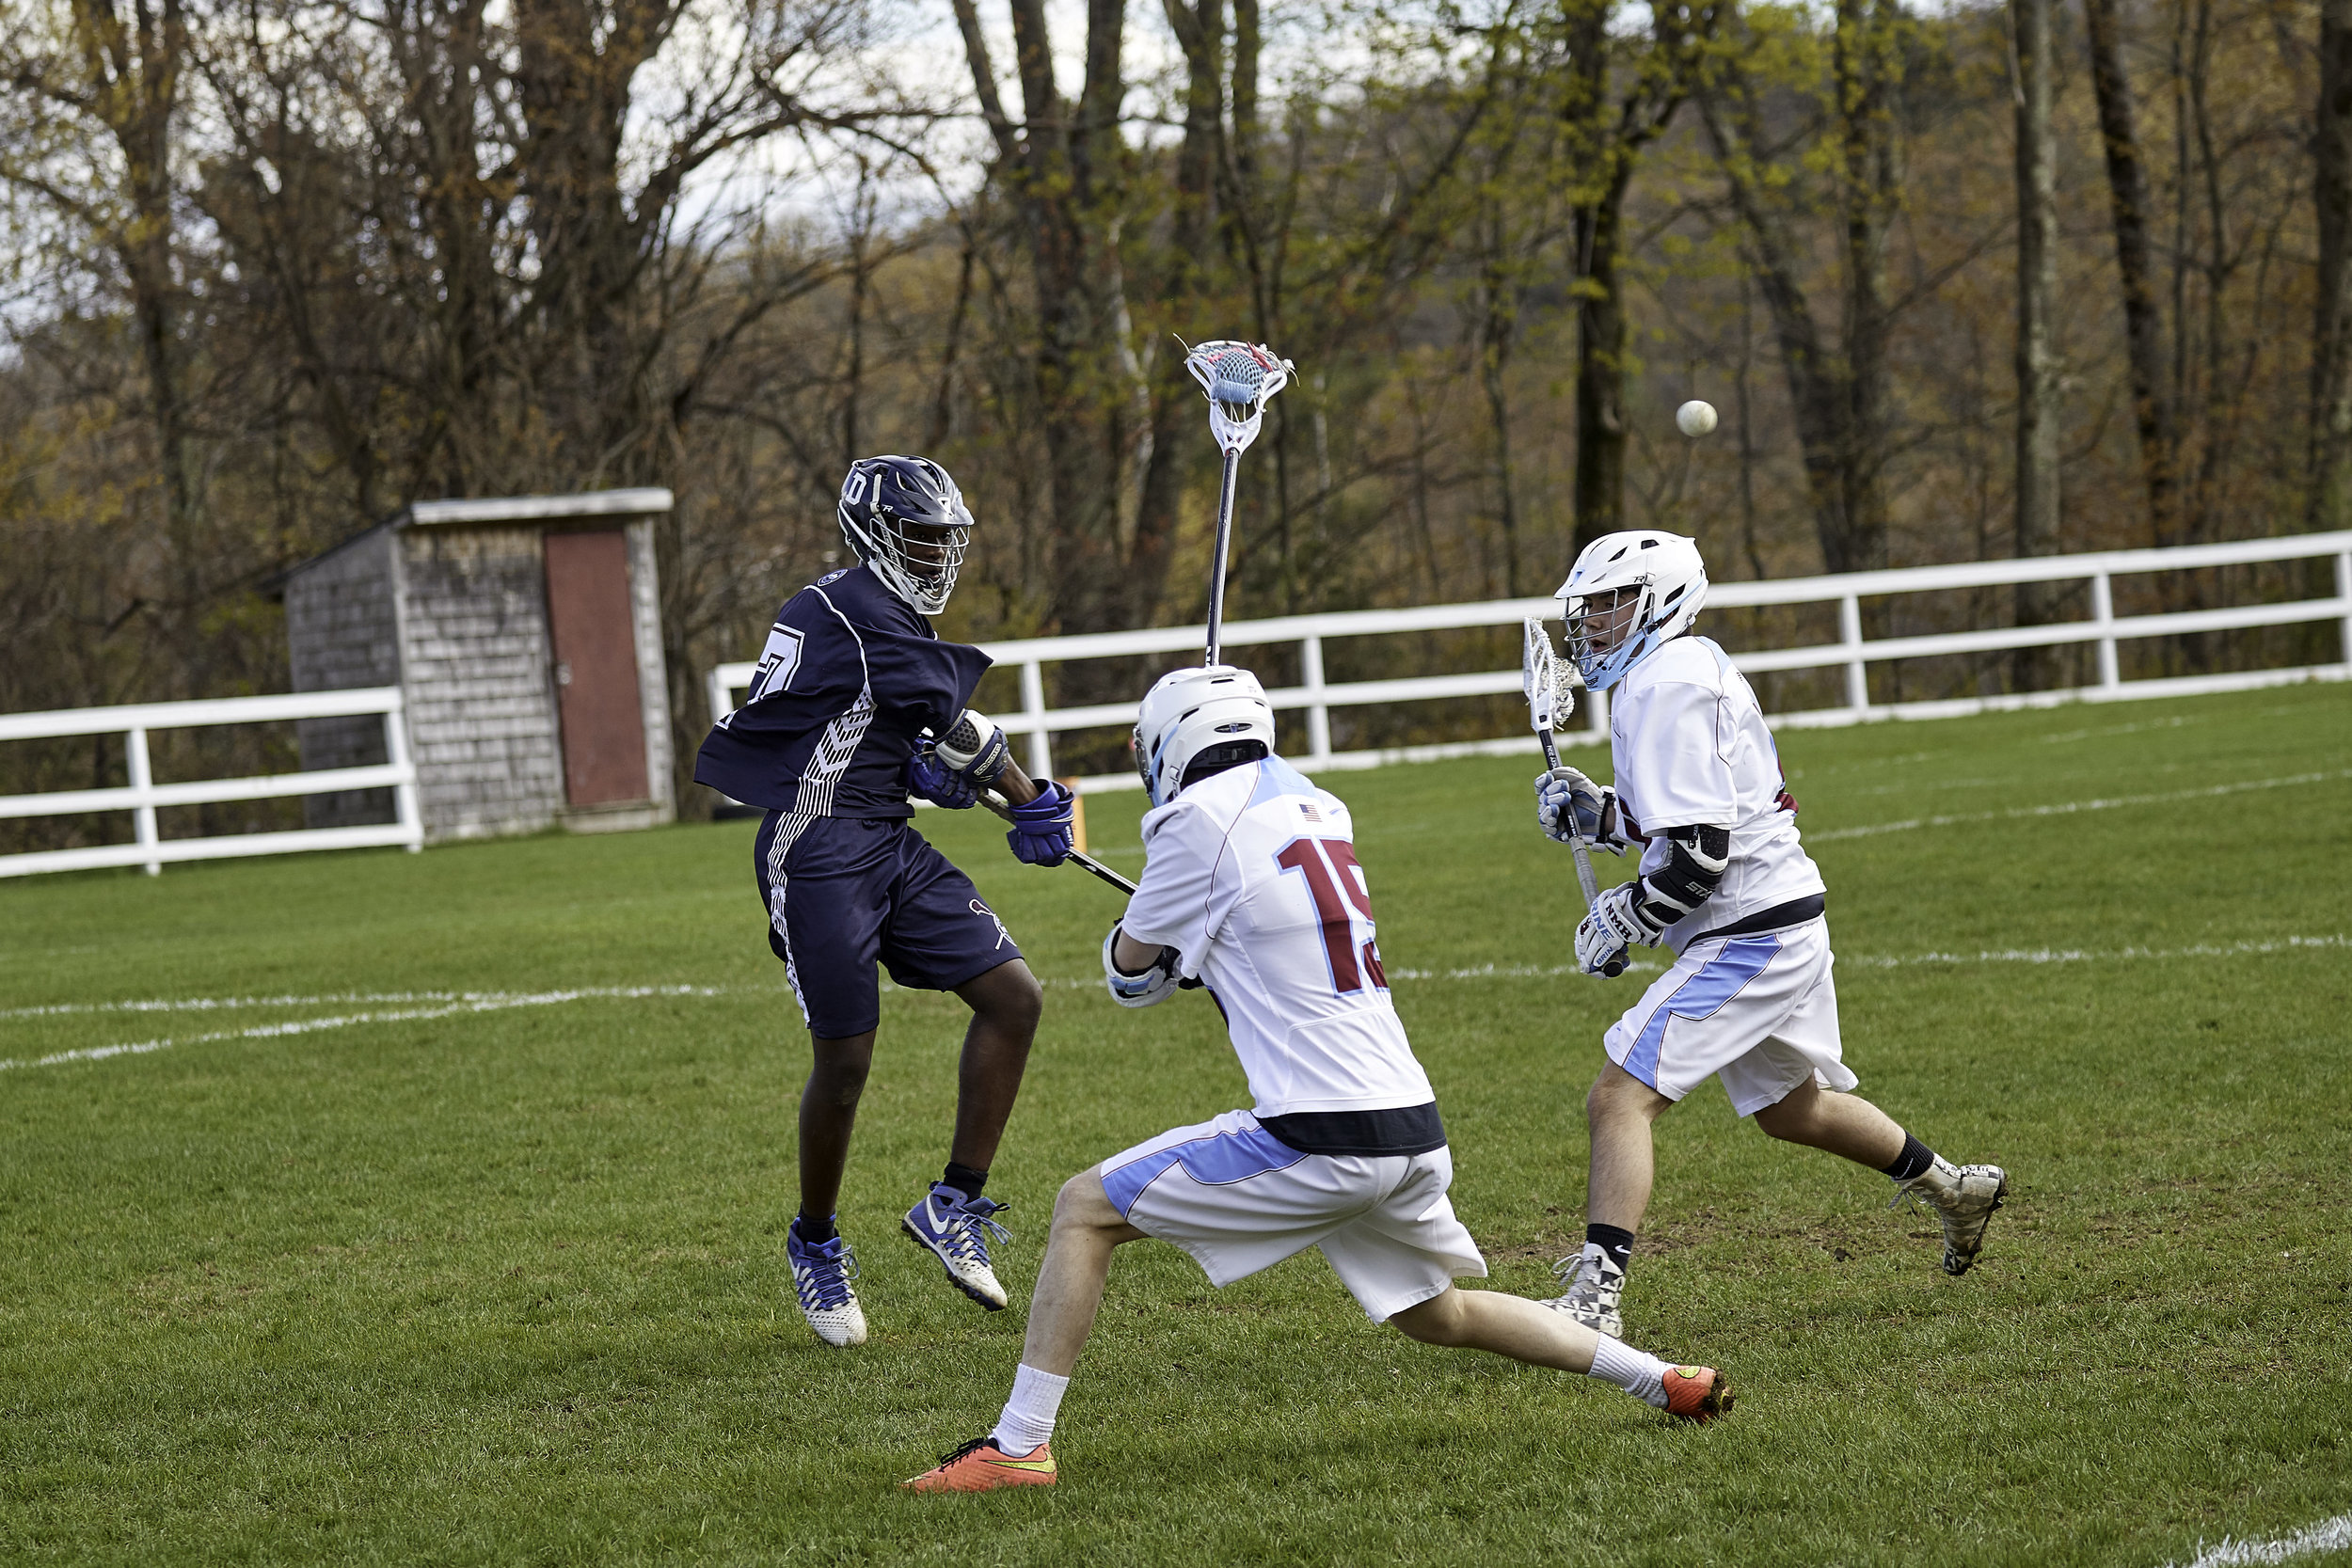 Boys Lax vs Northfield Mount Hermon JV - May 15 2019 - 0012.jpg